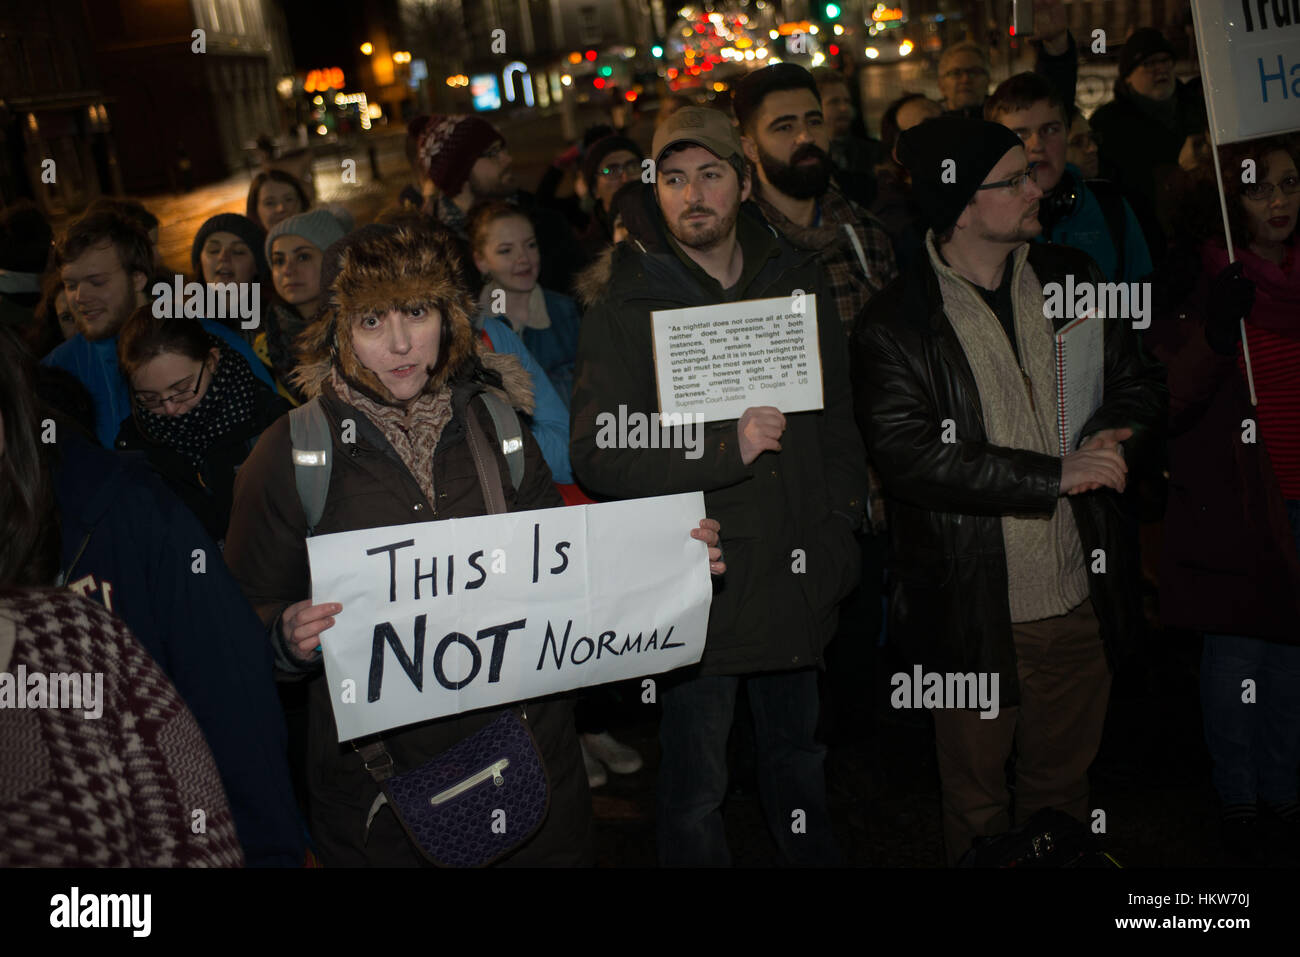 Aberdeen, UK. 30th January, 2017. Anti-Trump travel ban protest attracts hundreds of people in central Aberdeen, - Stock Image